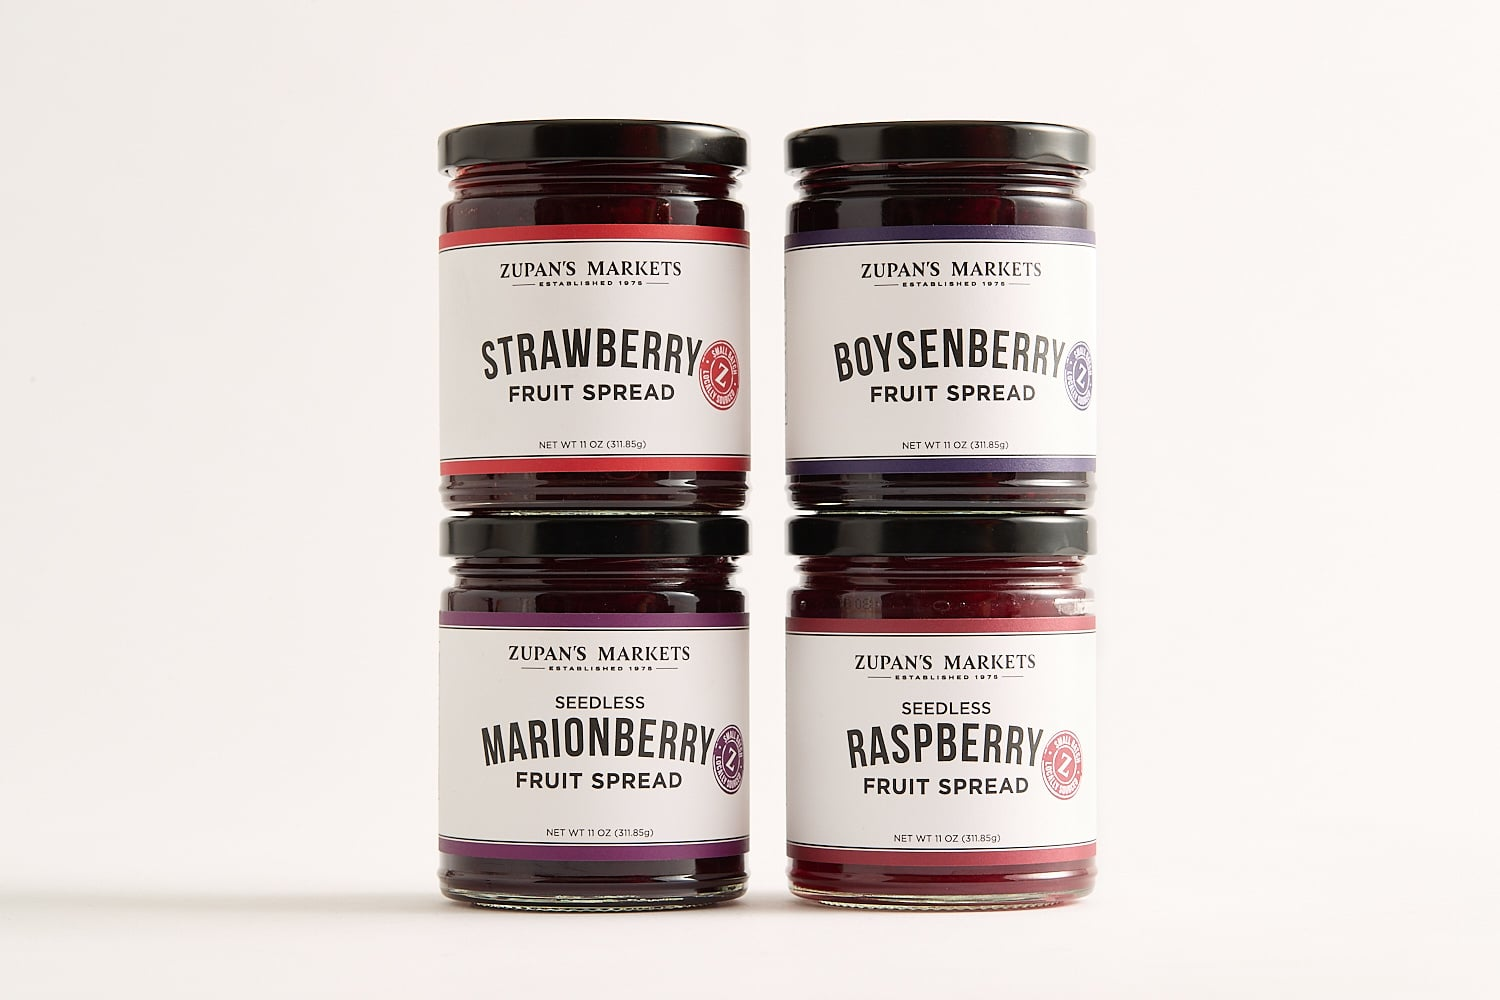 four jars of Zupan's Markets fruit spreads